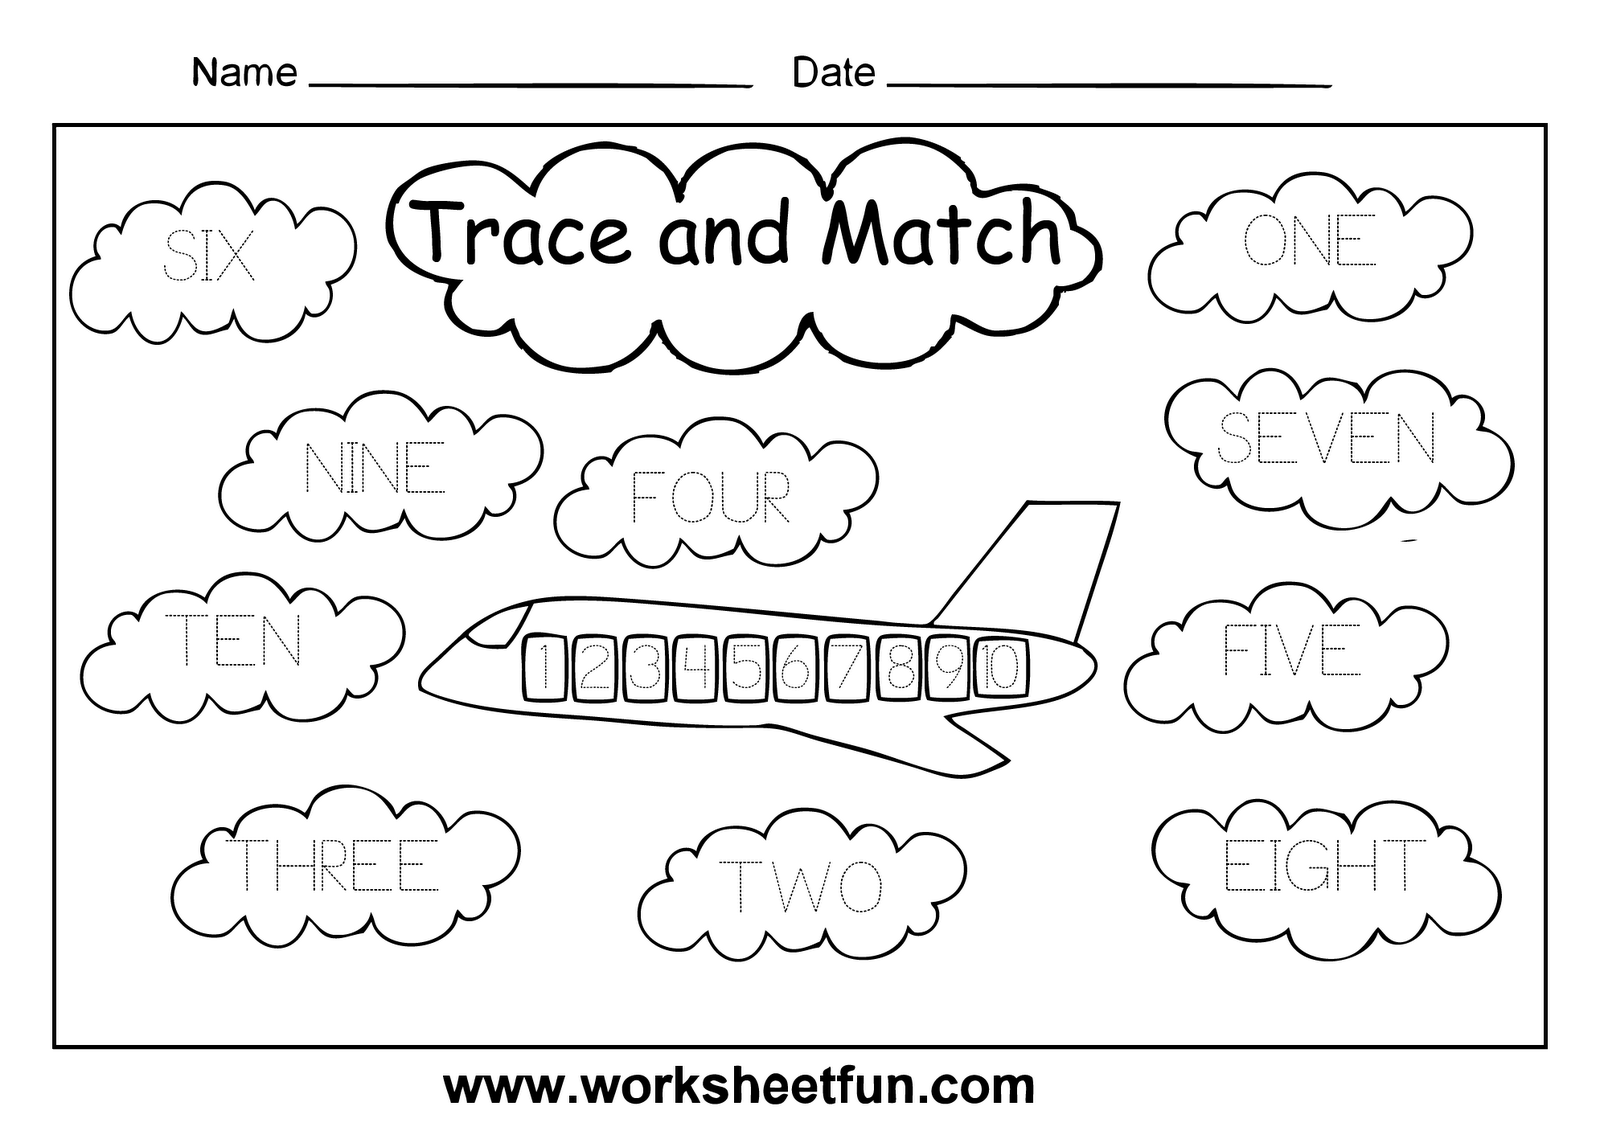 Proatmealus  Picturesque Numbers Worksheet    Narrativamente With Heavenly Worksheets On Conjunctions For Grade  Besides Tampareads Handwriting Worksheets Furthermore Grade  Language Arts Worksheets With Cool Worksheets Alphabet Also Age  Maths Worksheets In Addition Least Common Factor Worksheets And Multiplication Grids Worksheets As Well As Worksheet Of Addition Additionally  Addition Facts Worksheet From Narrativamentecom With Proatmealus  Heavenly Numbers Worksheet    Narrativamente With Cool Worksheets On Conjunctions For Grade  Besides Tampareads Handwriting Worksheets Furthermore Grade  Language Arts Worksheets And Picturesque Worksheets Alphabet Also Age  Maths Worksheets In Addition Least Common Factor Worksheets From Narrativamentecom